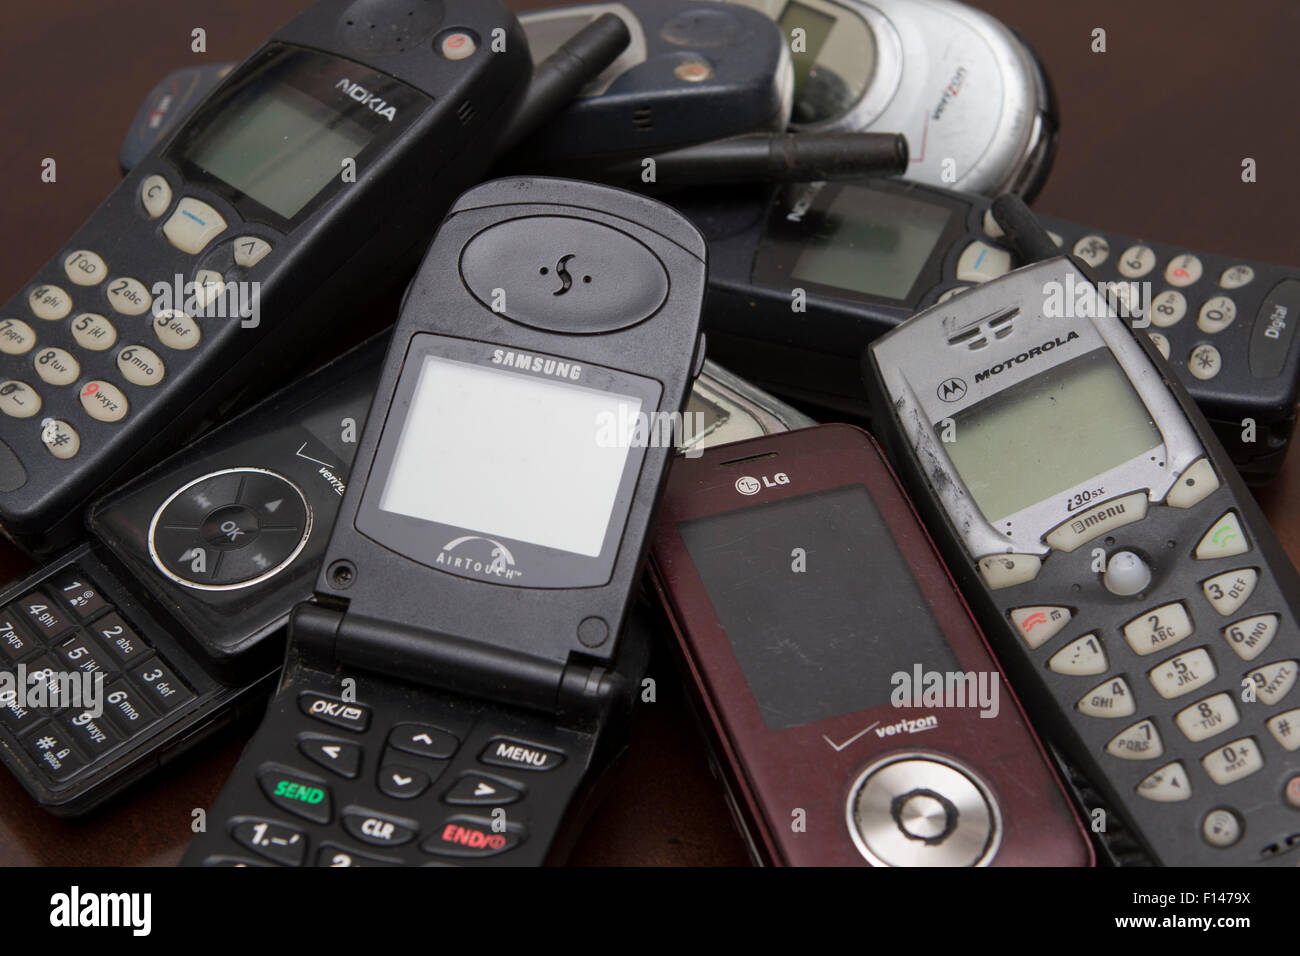 An assortment of old cell phones - Stock Image